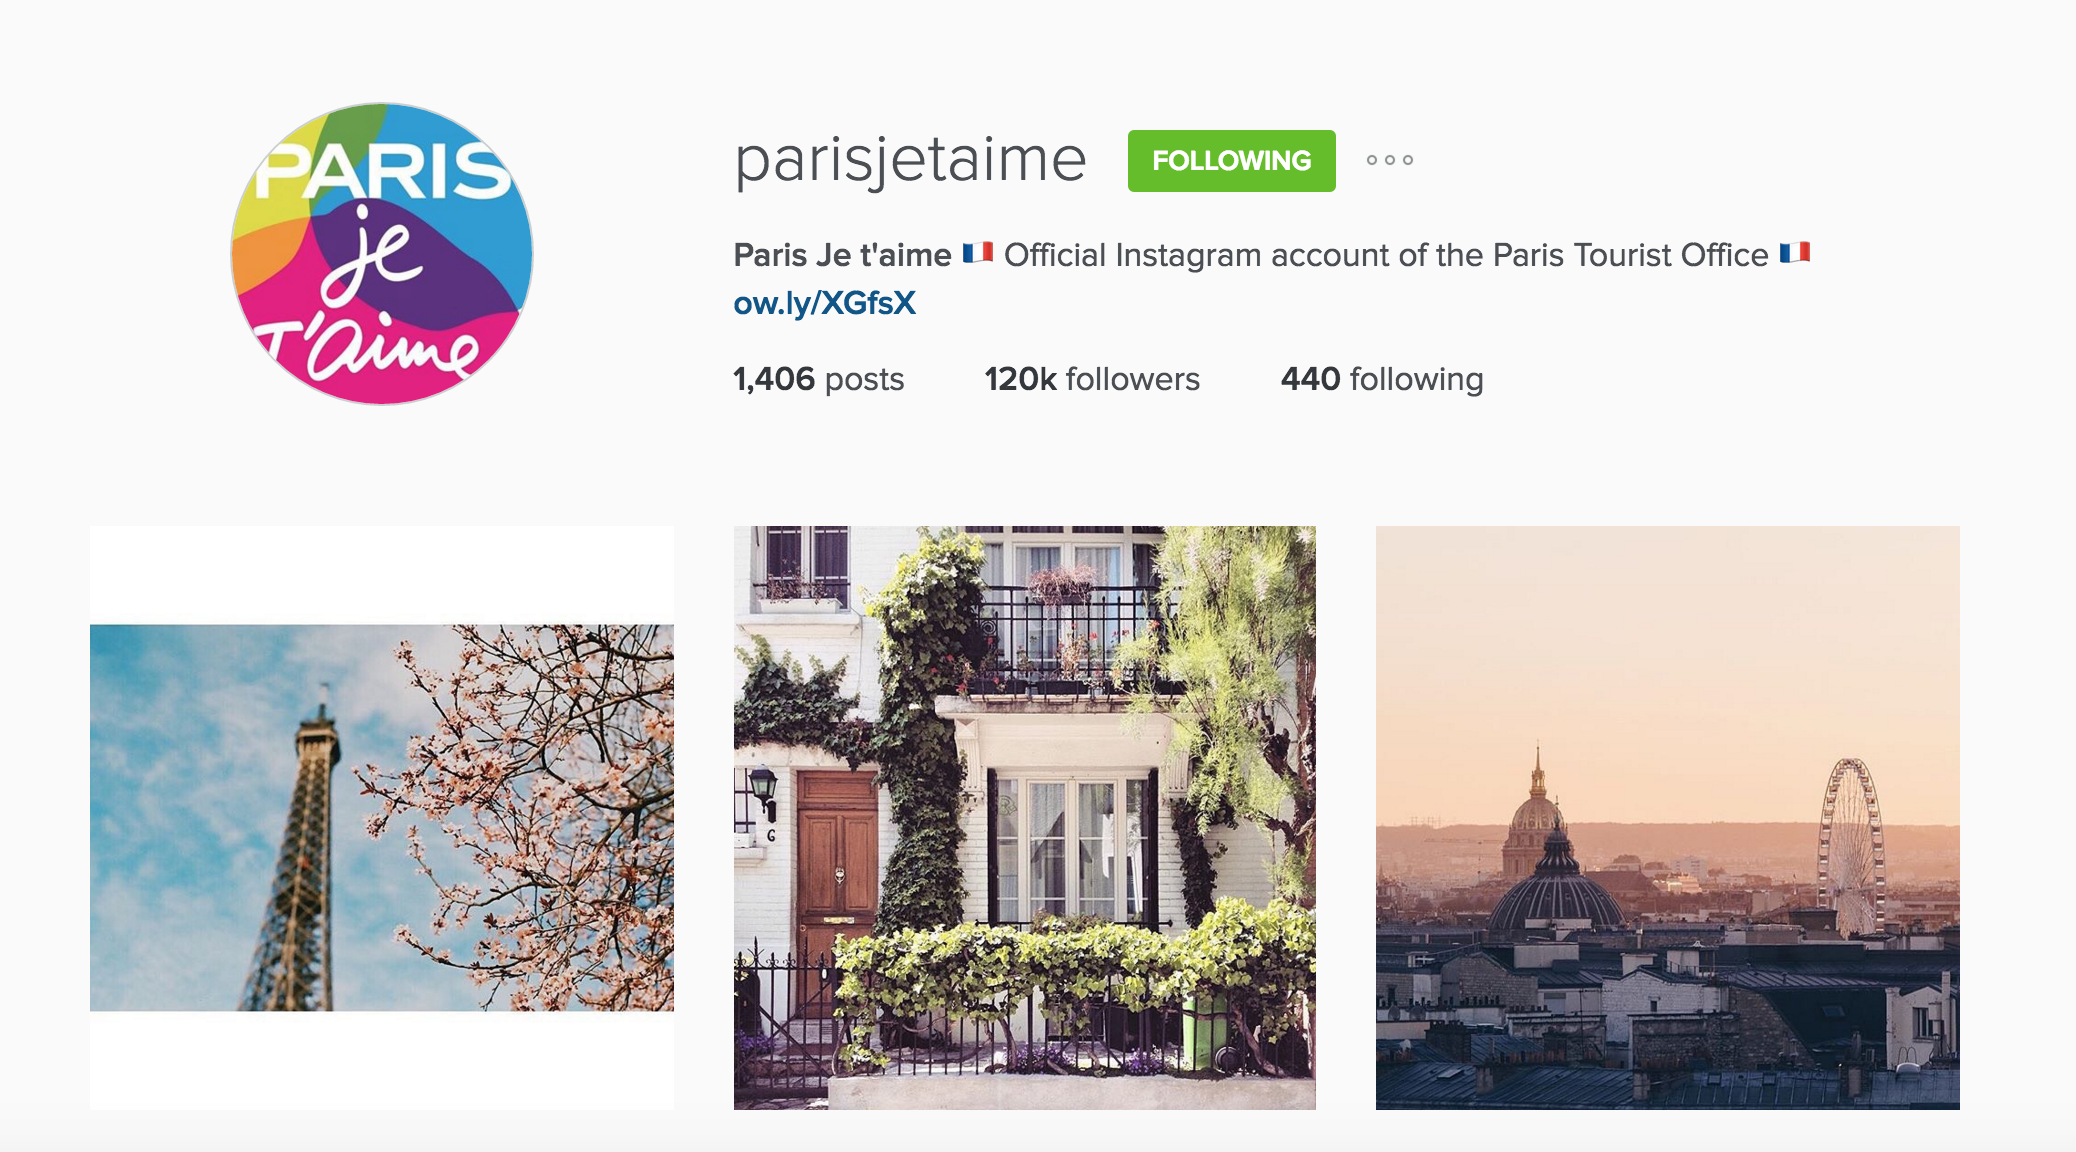 instagram cariboo paris account tourist office